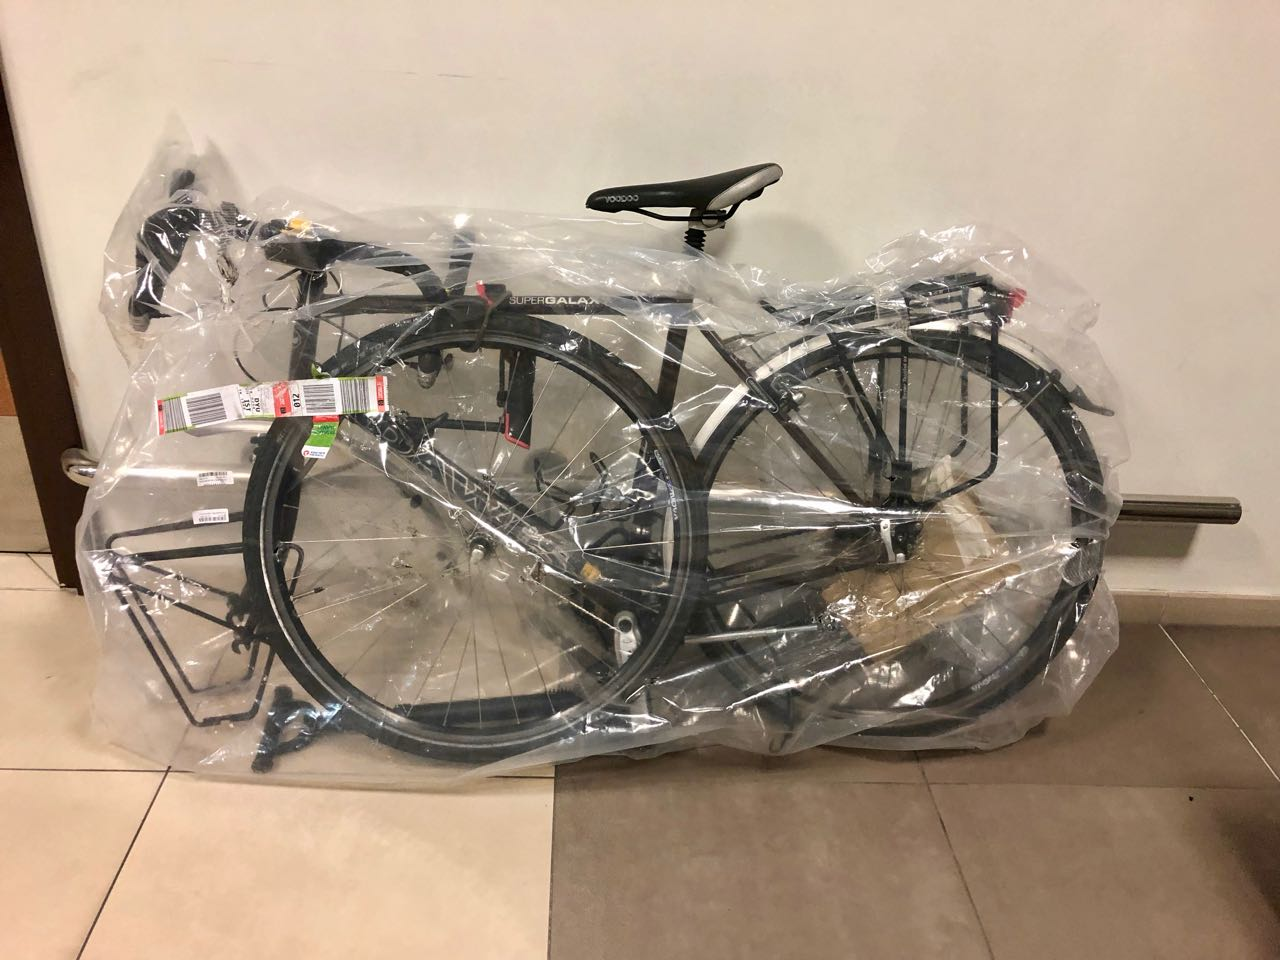 Bicycle in its packaging